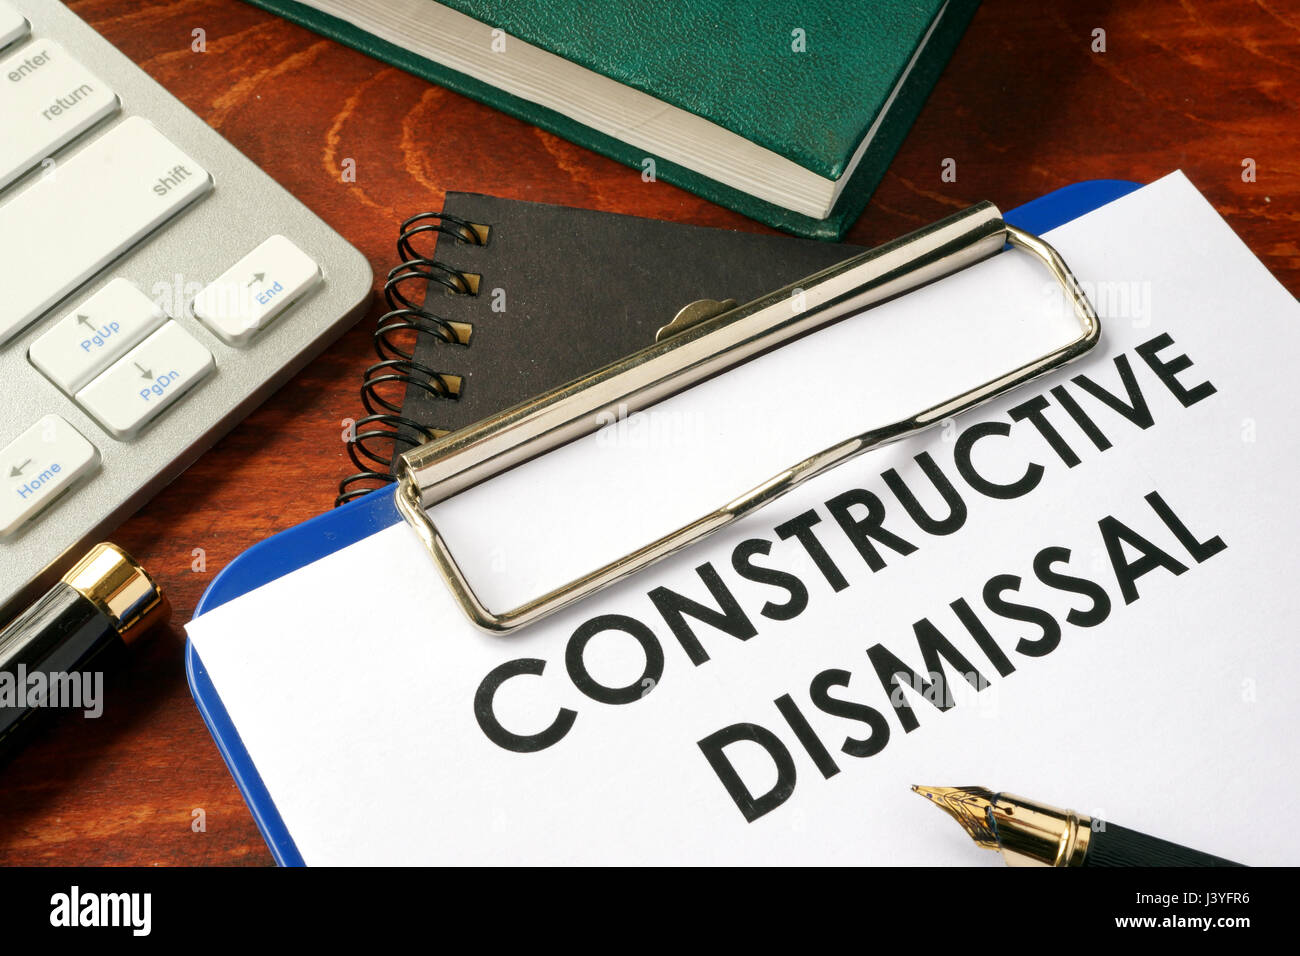 Constructive dismissal on a clipboard. Termination of employment concept. - Stock Image